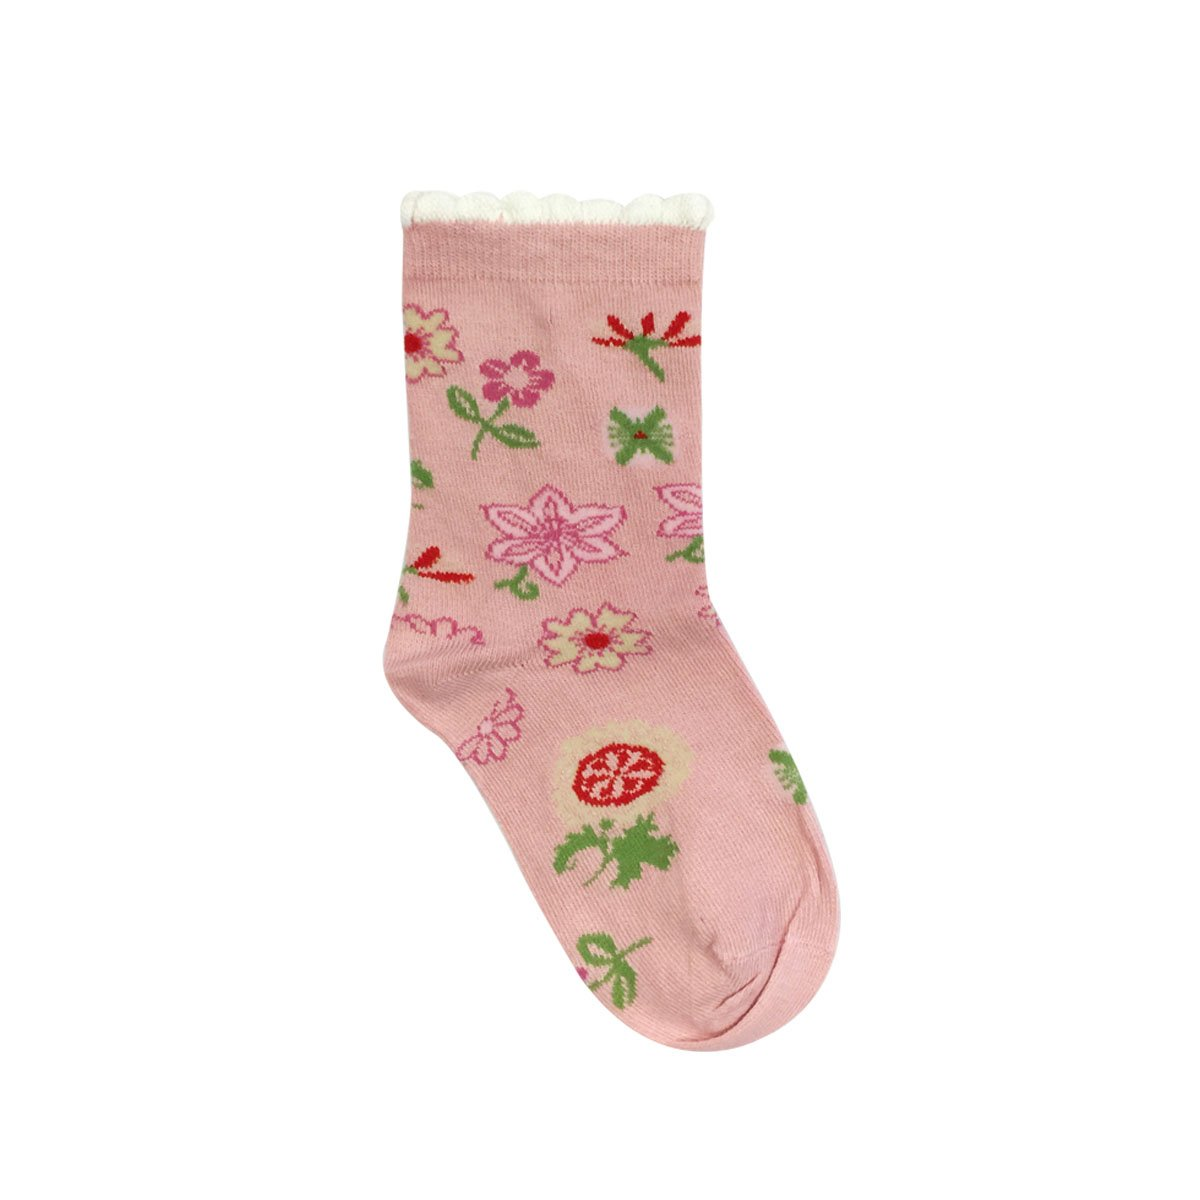 Bowbear Little Girls 3 Pair Flower Garden Socks